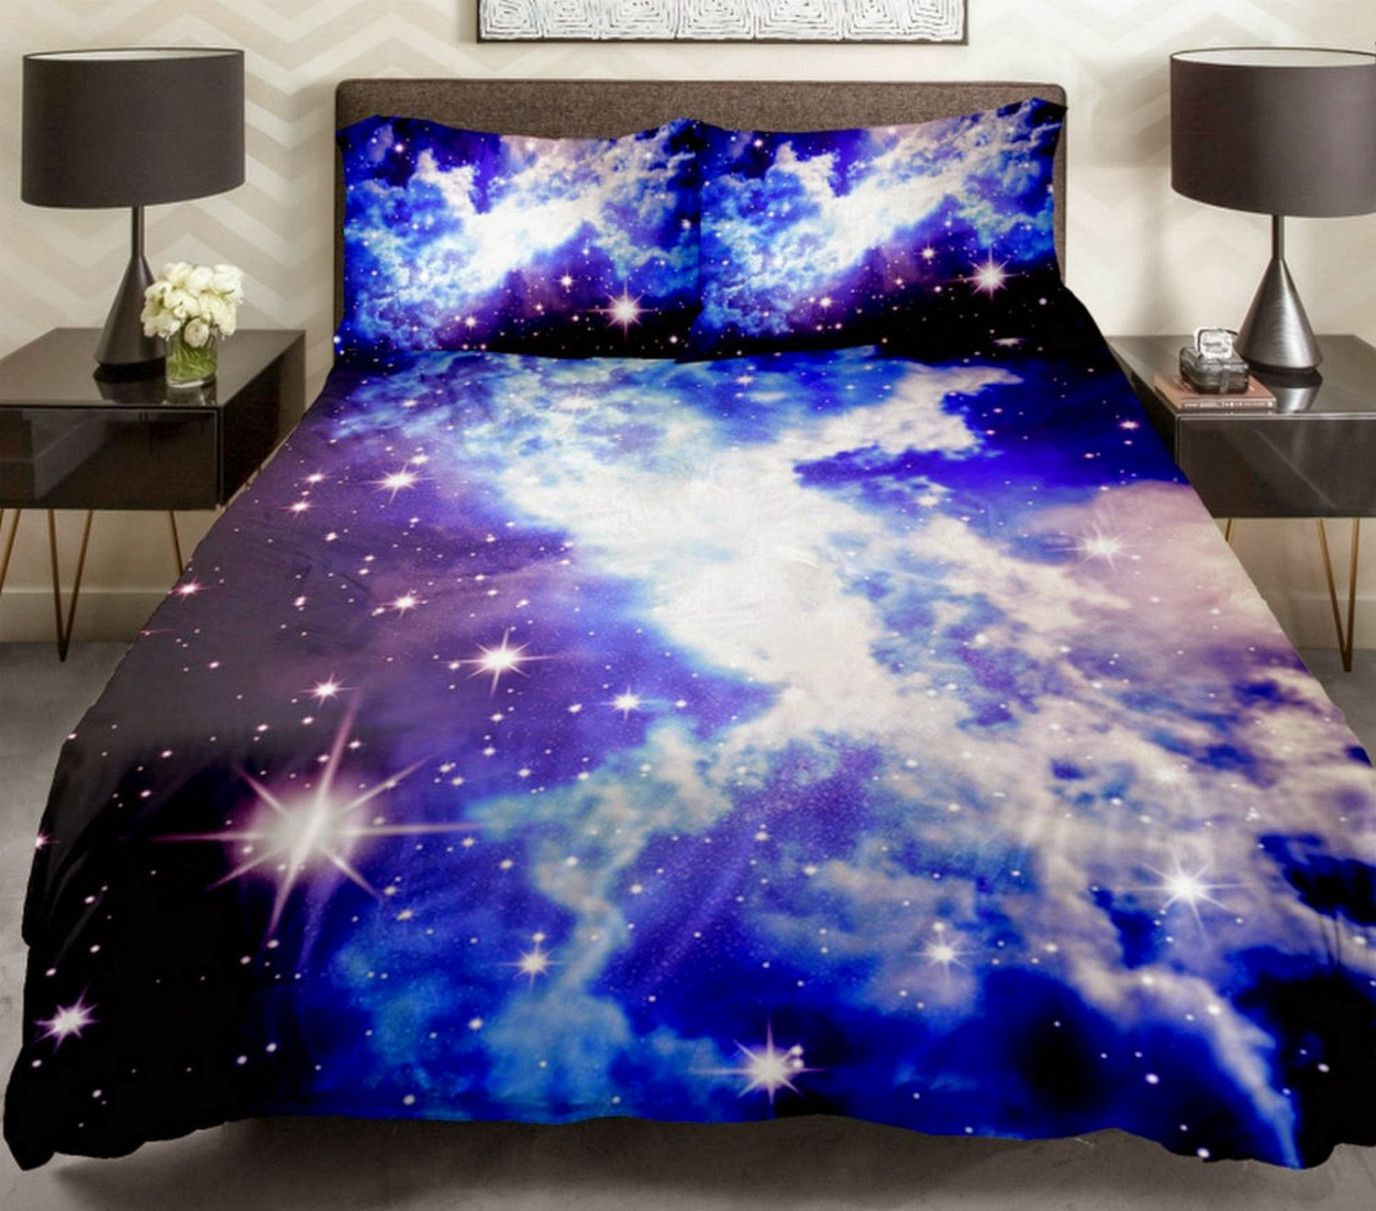 78 Galaxy Themed Bedroom